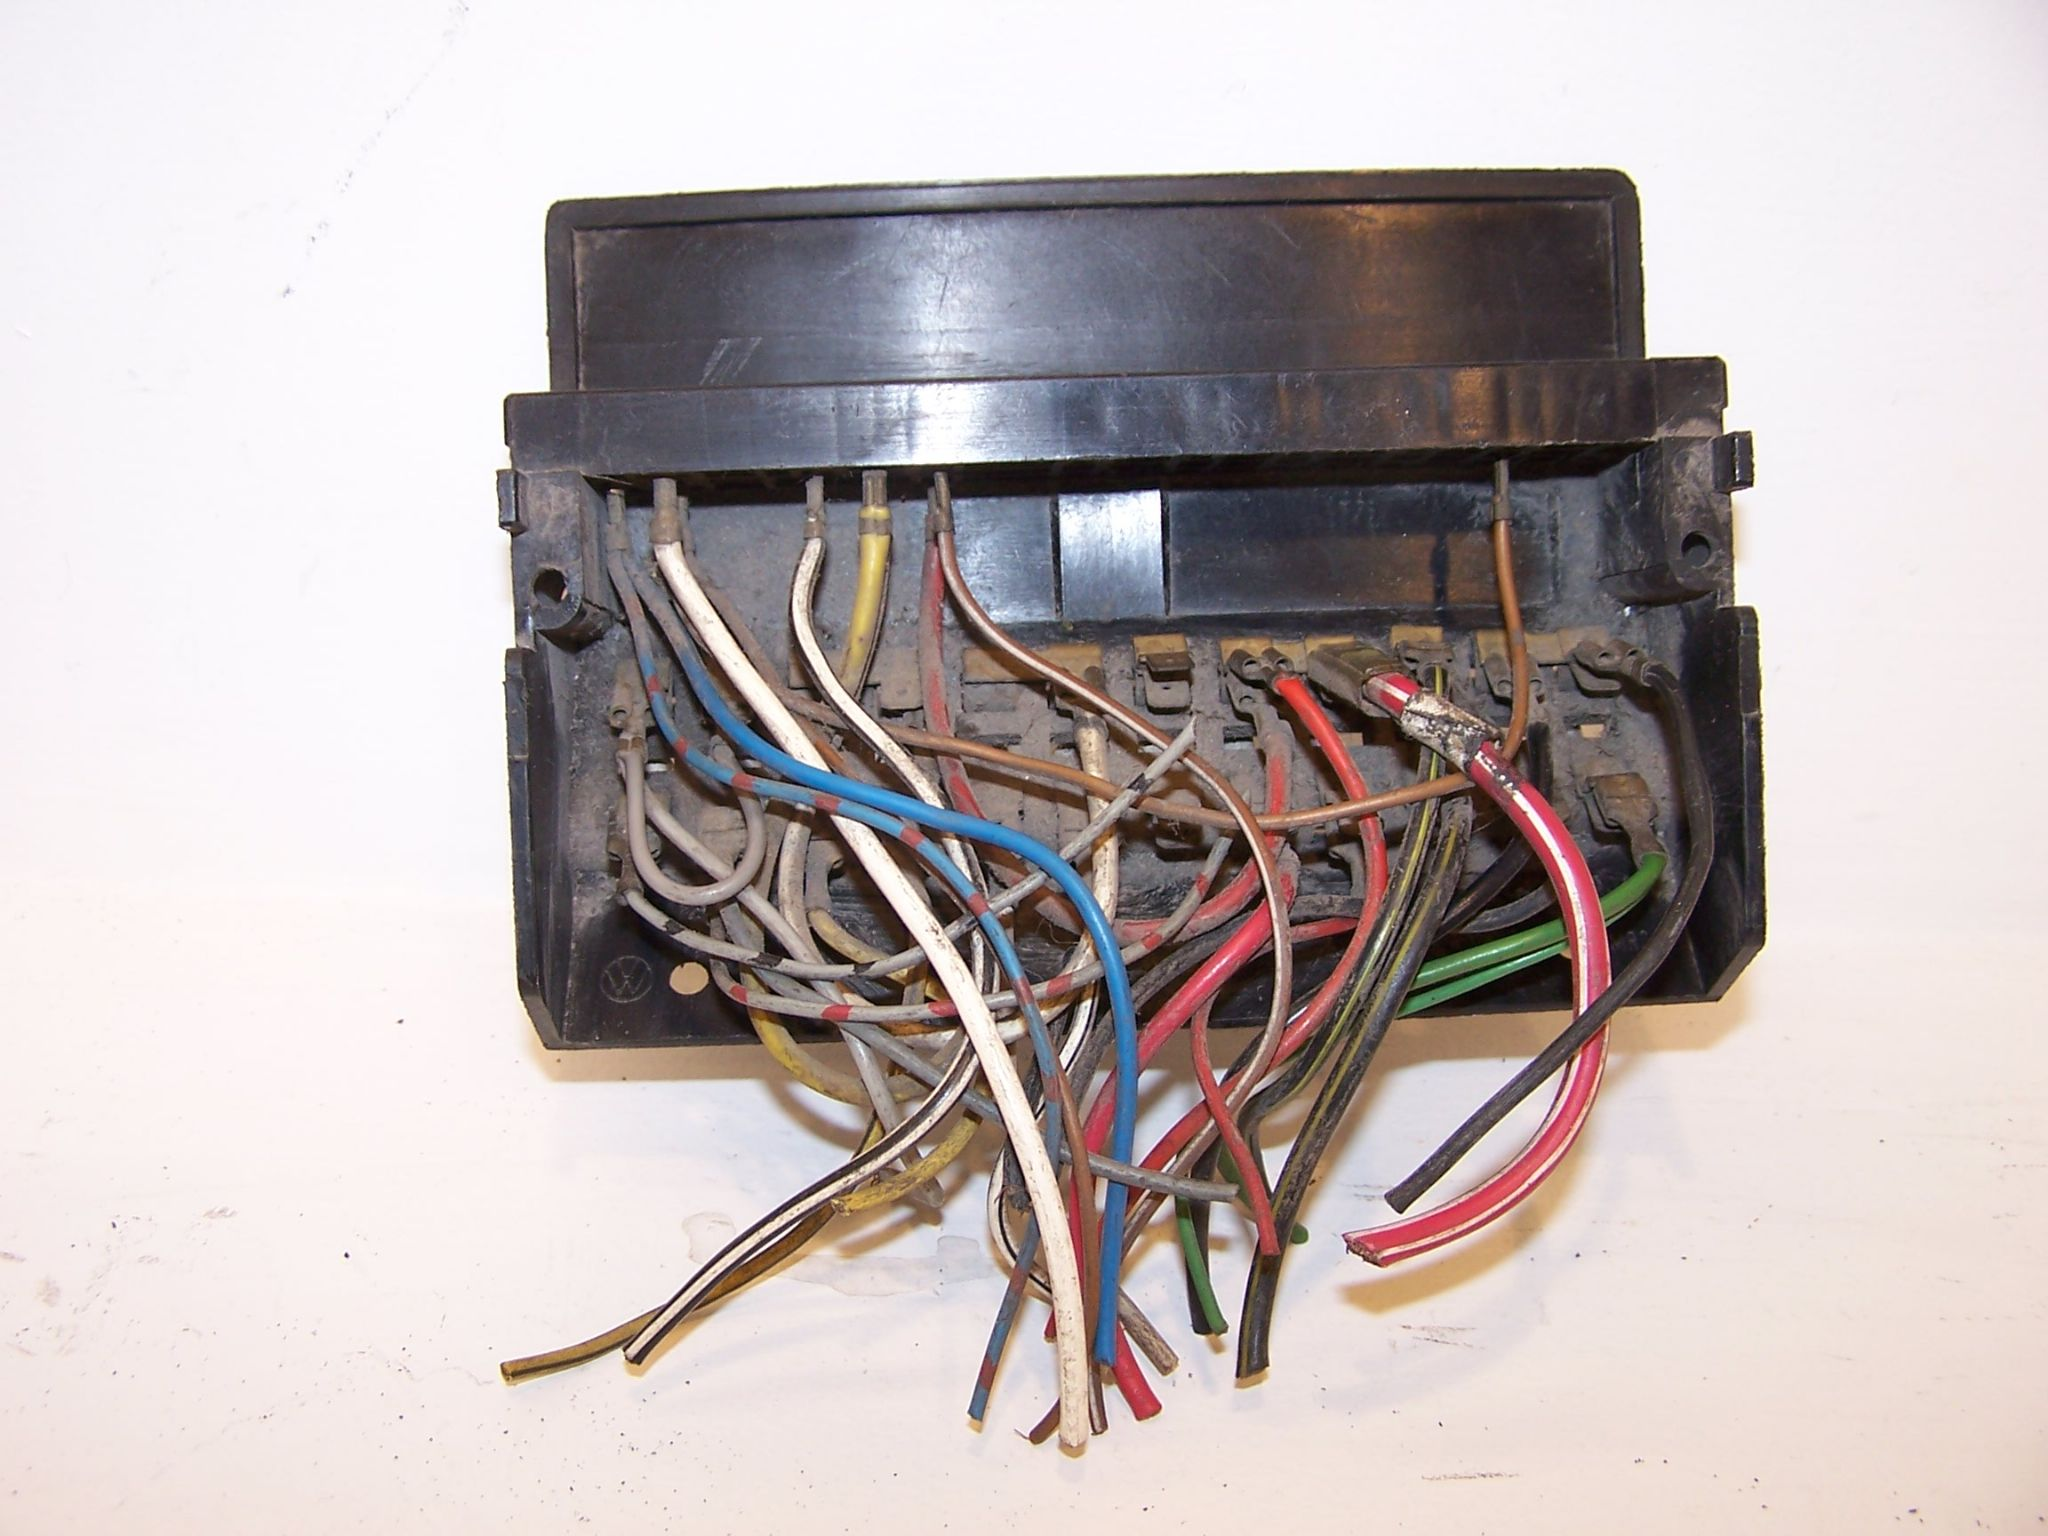 fuse box vw beetle 1303 type 2 1974 1979 rh megabug co uk